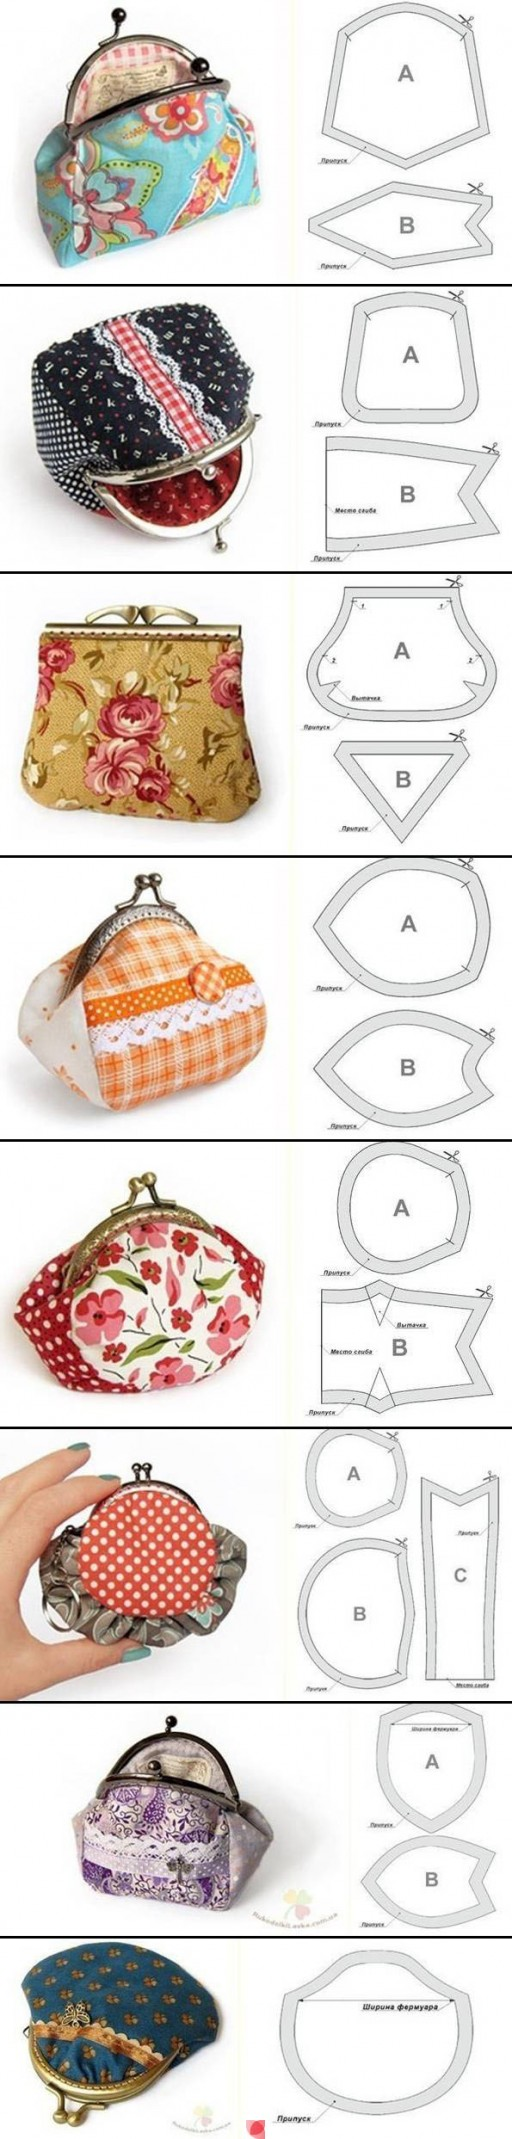 8 templates to sew cute handbag purses